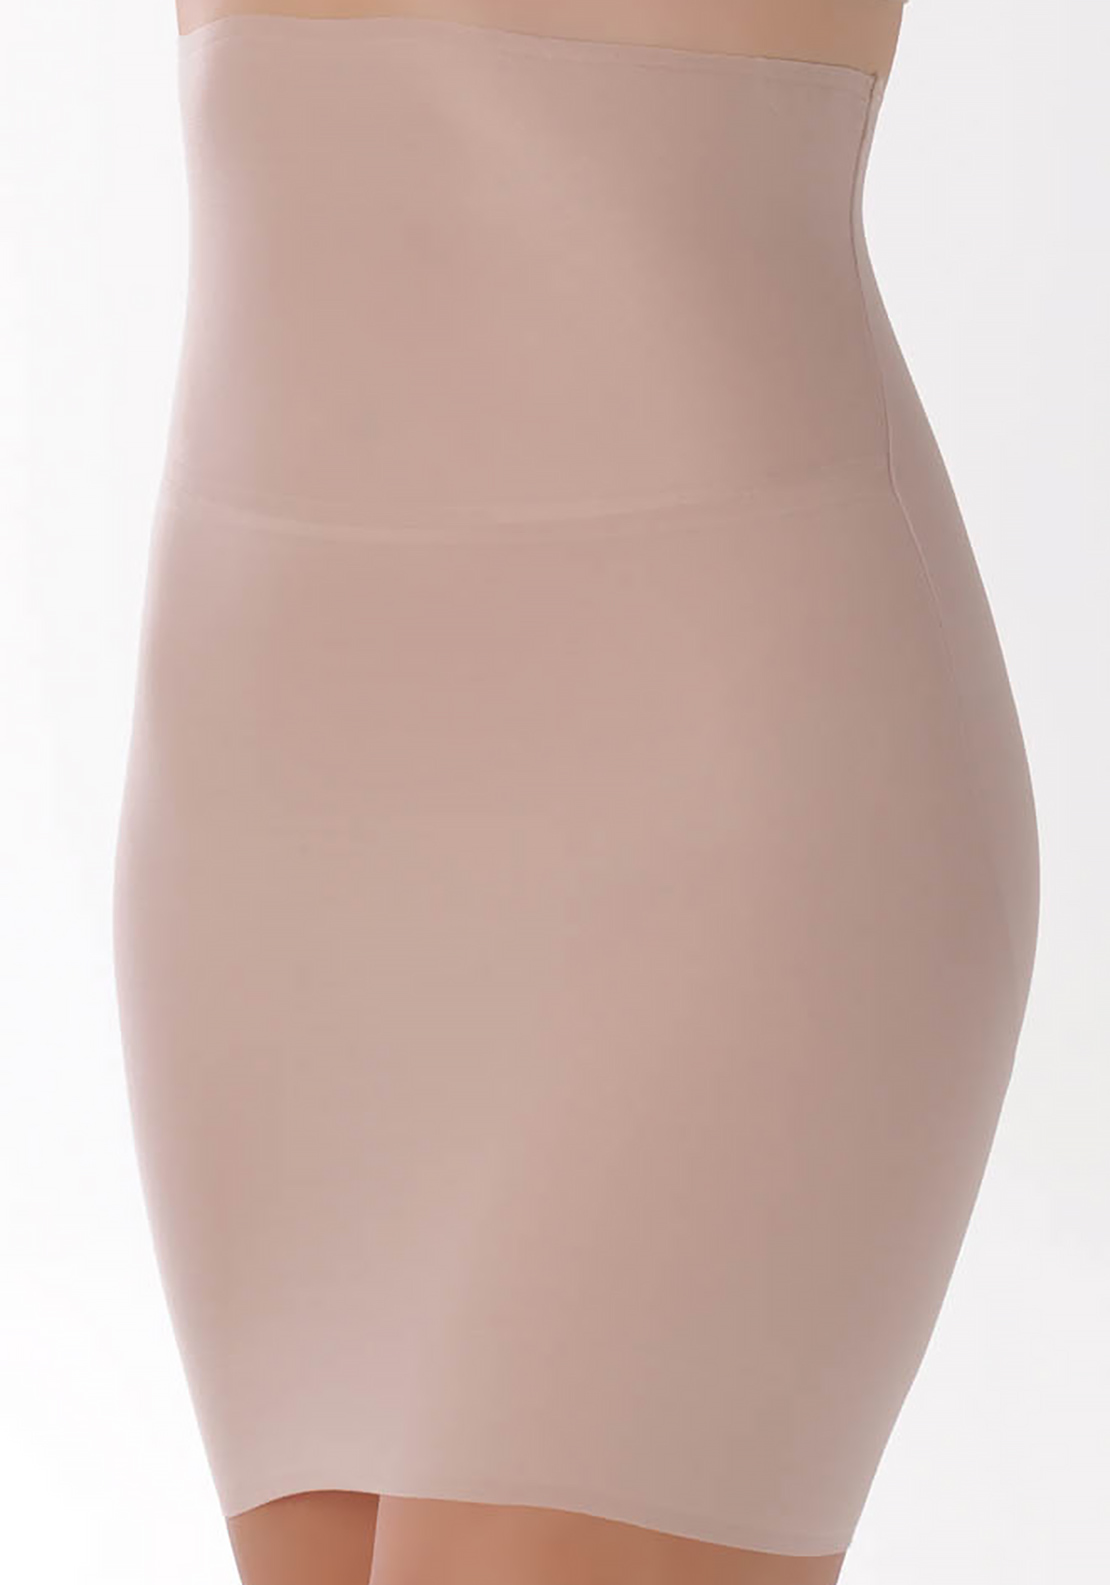 Naomi and Nicole Amazing Light Adjustable Rise Waist Shaper, Nude